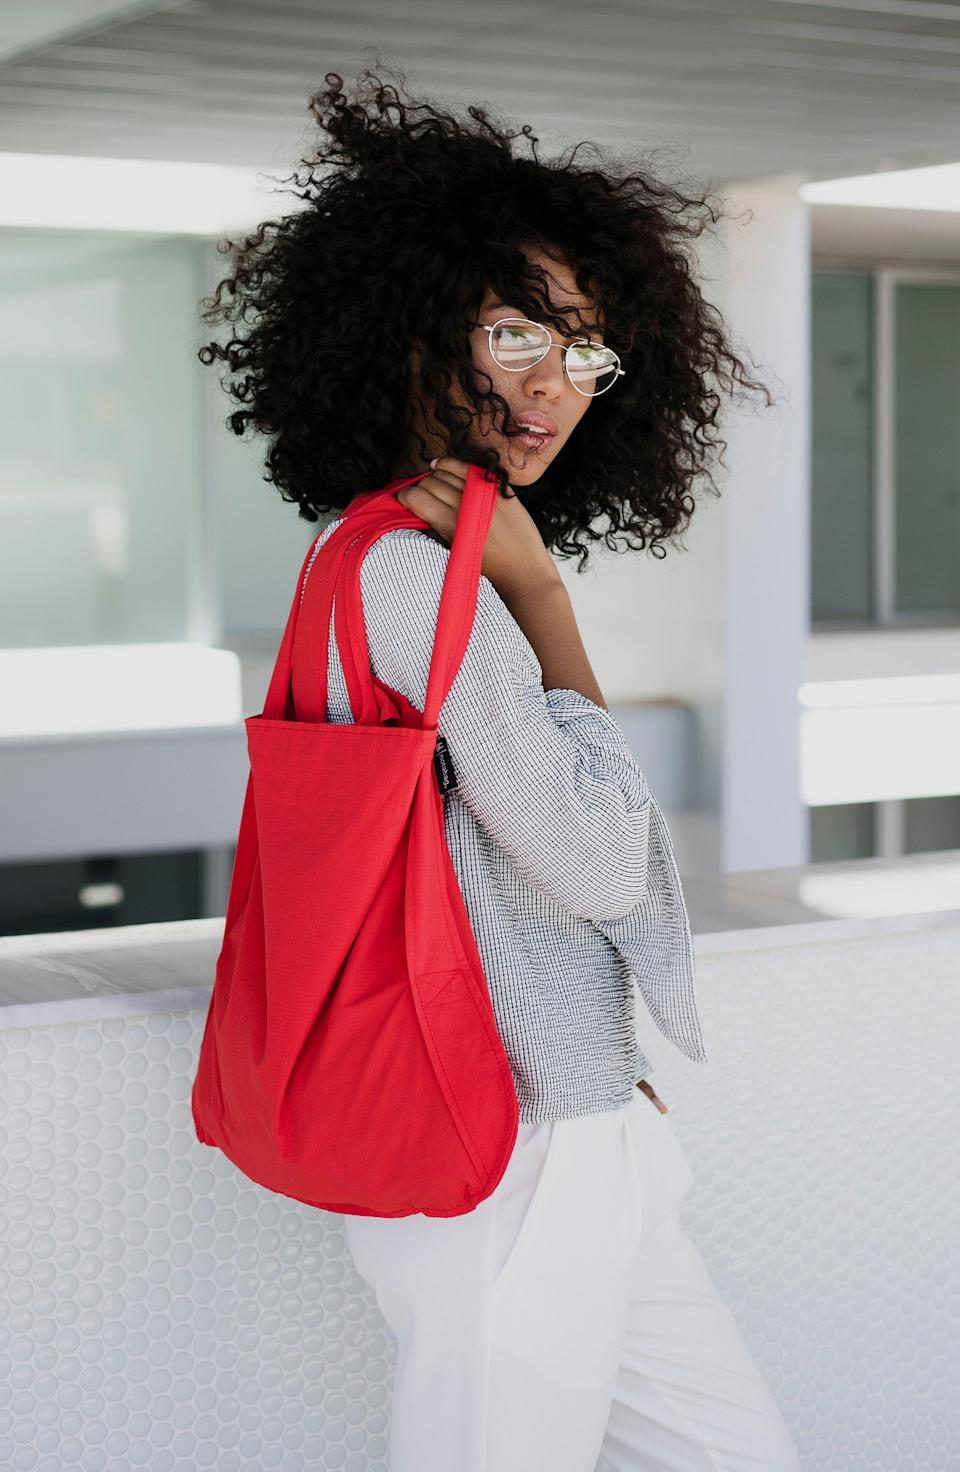 """<p><strong>NOTABAG</strong></p><p>nordstrom.com</p><p><strong>$21.00</strong></p><p><a href=""""https://go.redirectingat.com?id=74968X1596630&url=https%3A%2F%2Fwww.nordstrom.com%2Fs%2Fnotabag-convertible-tote-backpack%2F4965149&sref=https%3A%2F%2Fwww.housebeautiful.com%2Fentertaining%2Fholidays-celebrations%2Fg34836475%2Fgifts-for-sisters%2F"""" rel=""""nofollow noopener"""" target=""""_blank"""" data-ylk=""""slk:Shop Now"""" class=""""link rapid-noclick-resp"""">Shop Now</a></p>"""